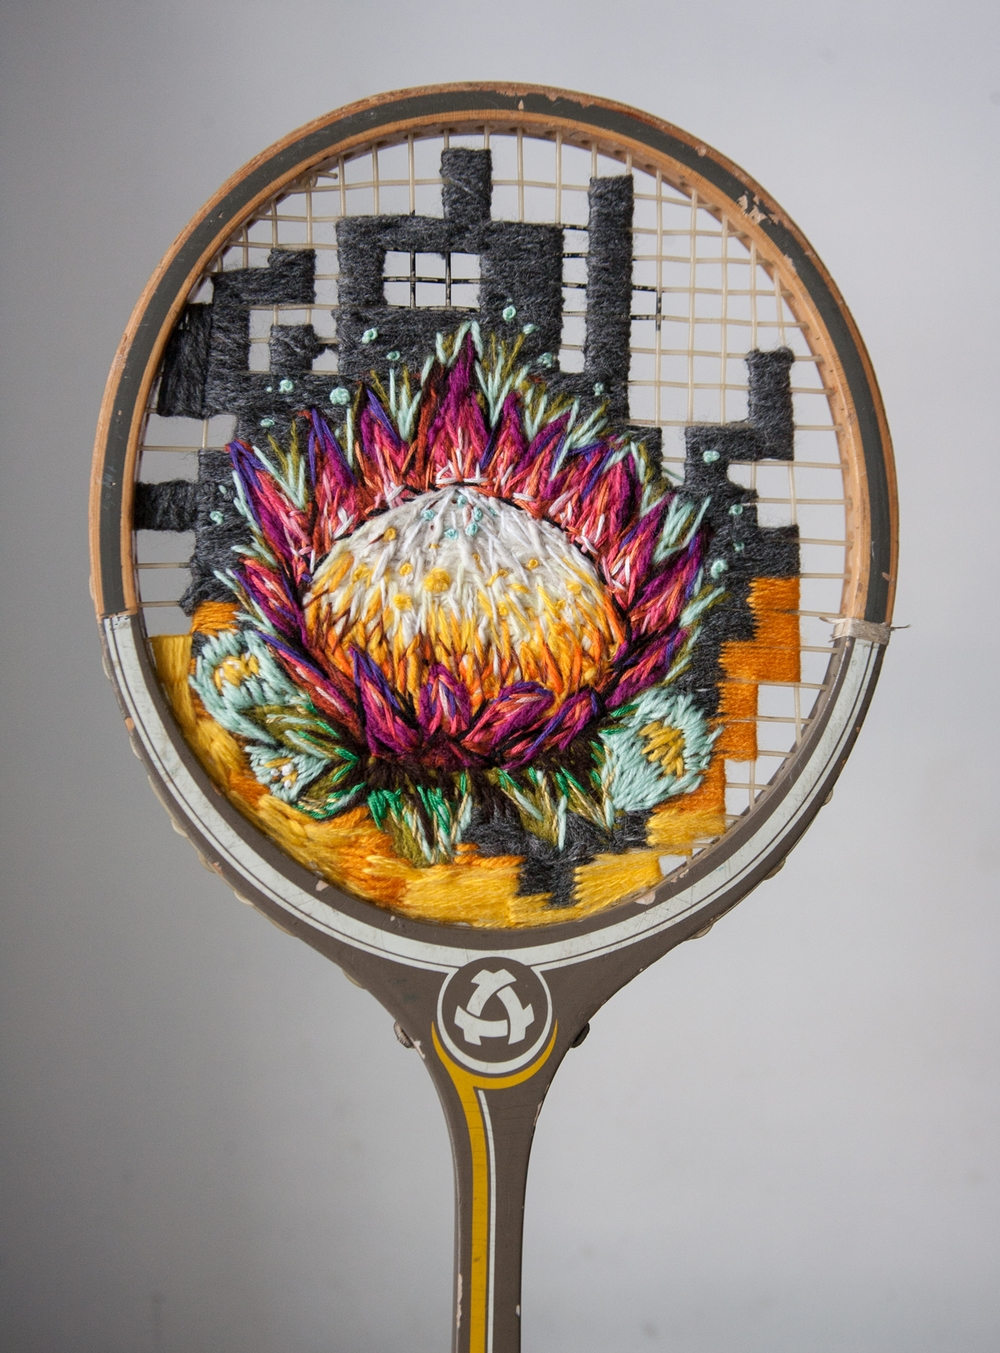 what-a-racket2 - Copy